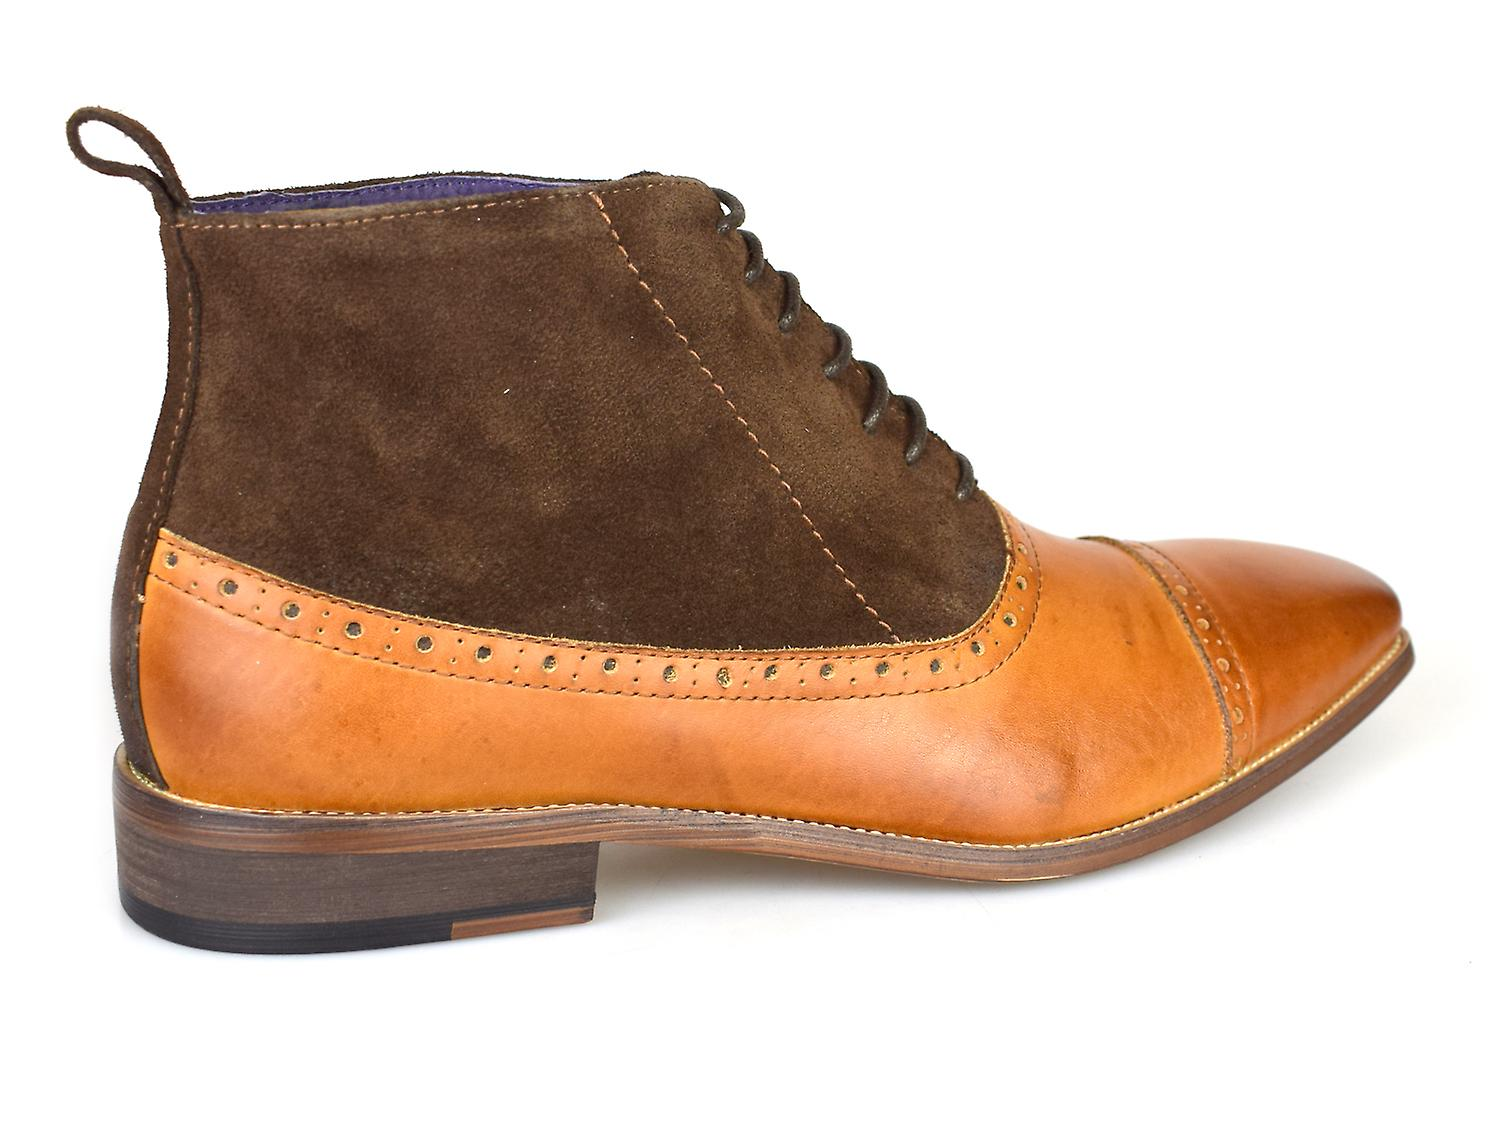 Gucinari Luciano Tan & Brown Leather Formal Brogue Boots D273-4